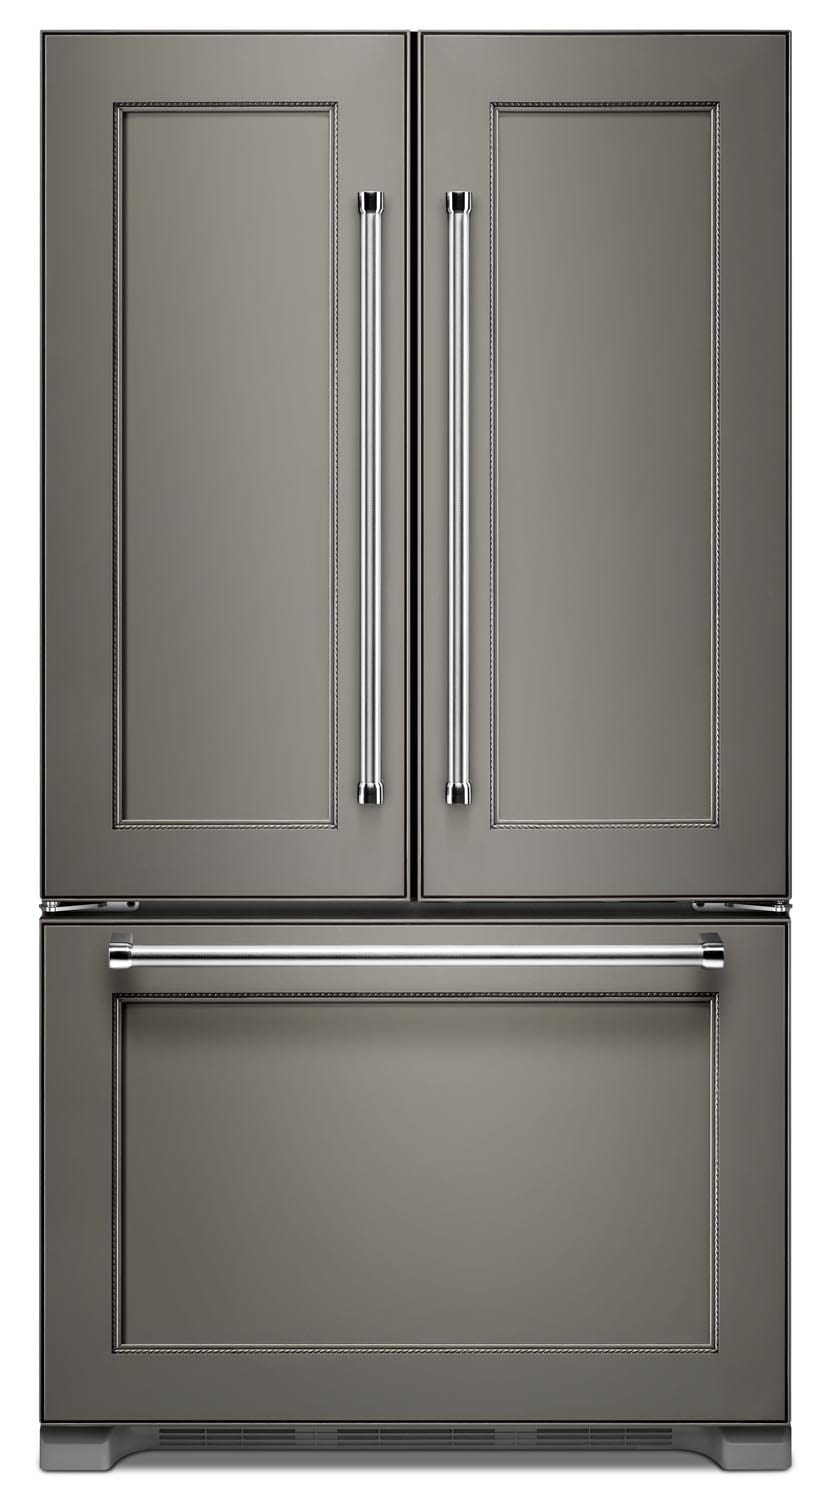 KitchenAid Custom Panel-Ready French Door Refrigerator (20.9 Cu. Ft.) - KRFC302EPA